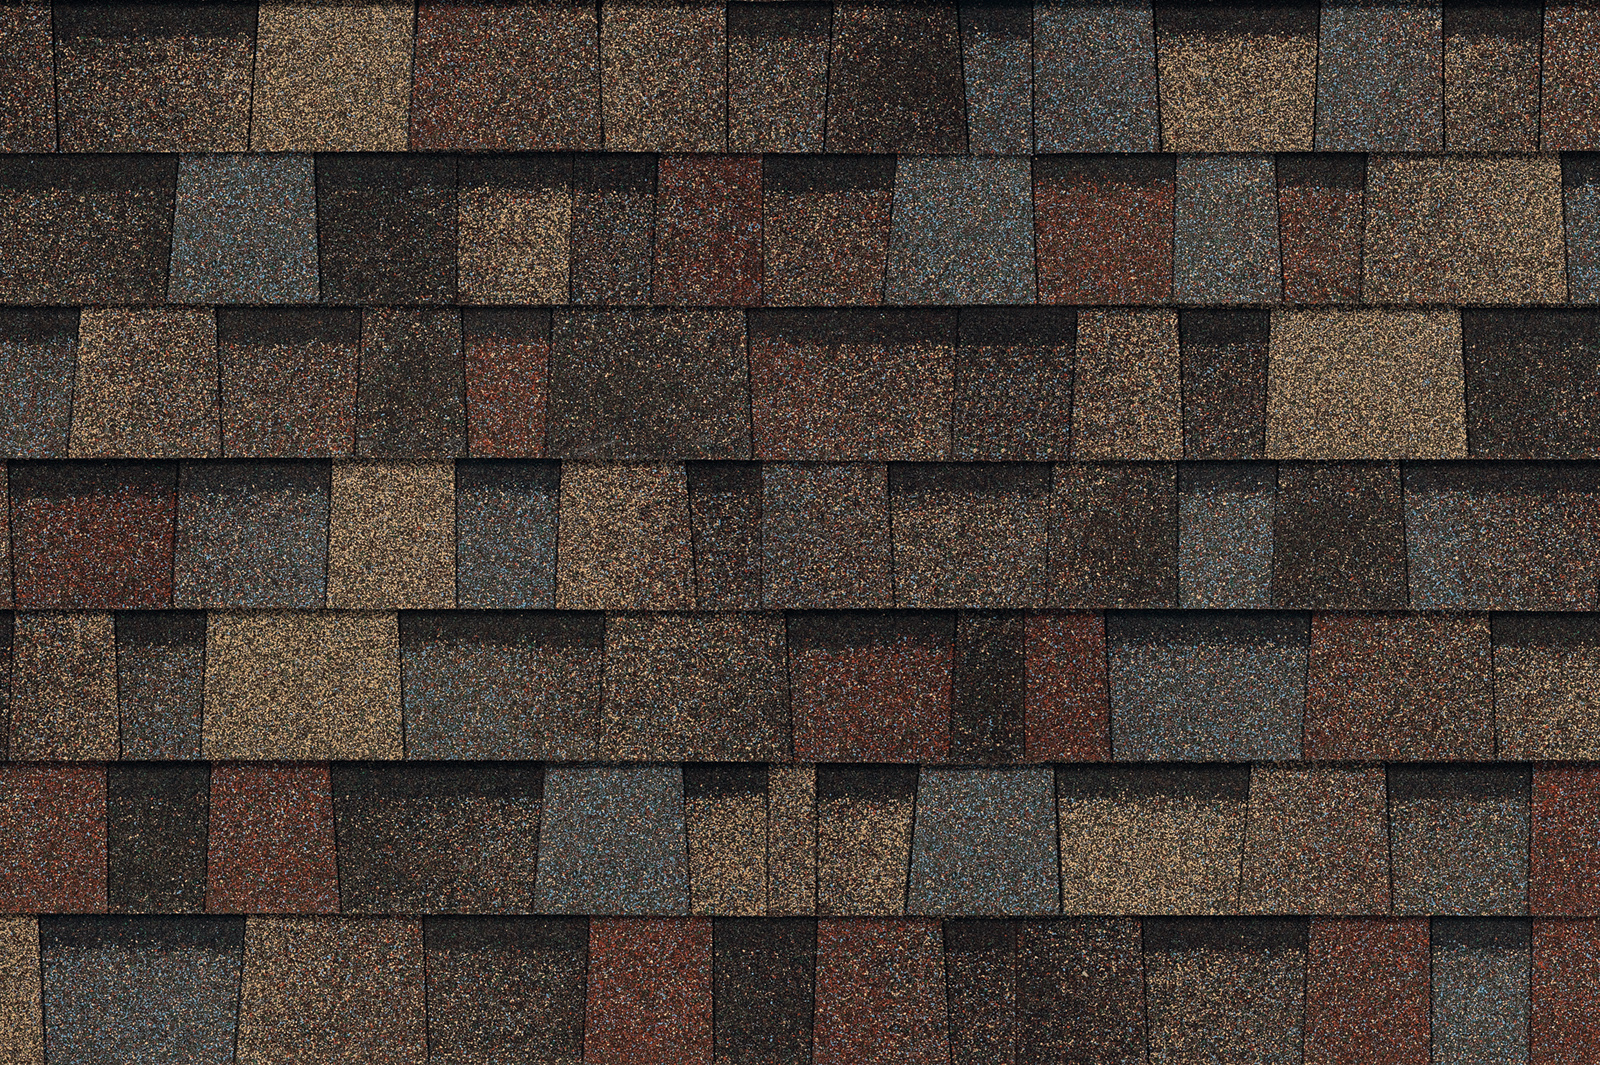 Dfw Best Roofing North Richland Hills Texas Proview